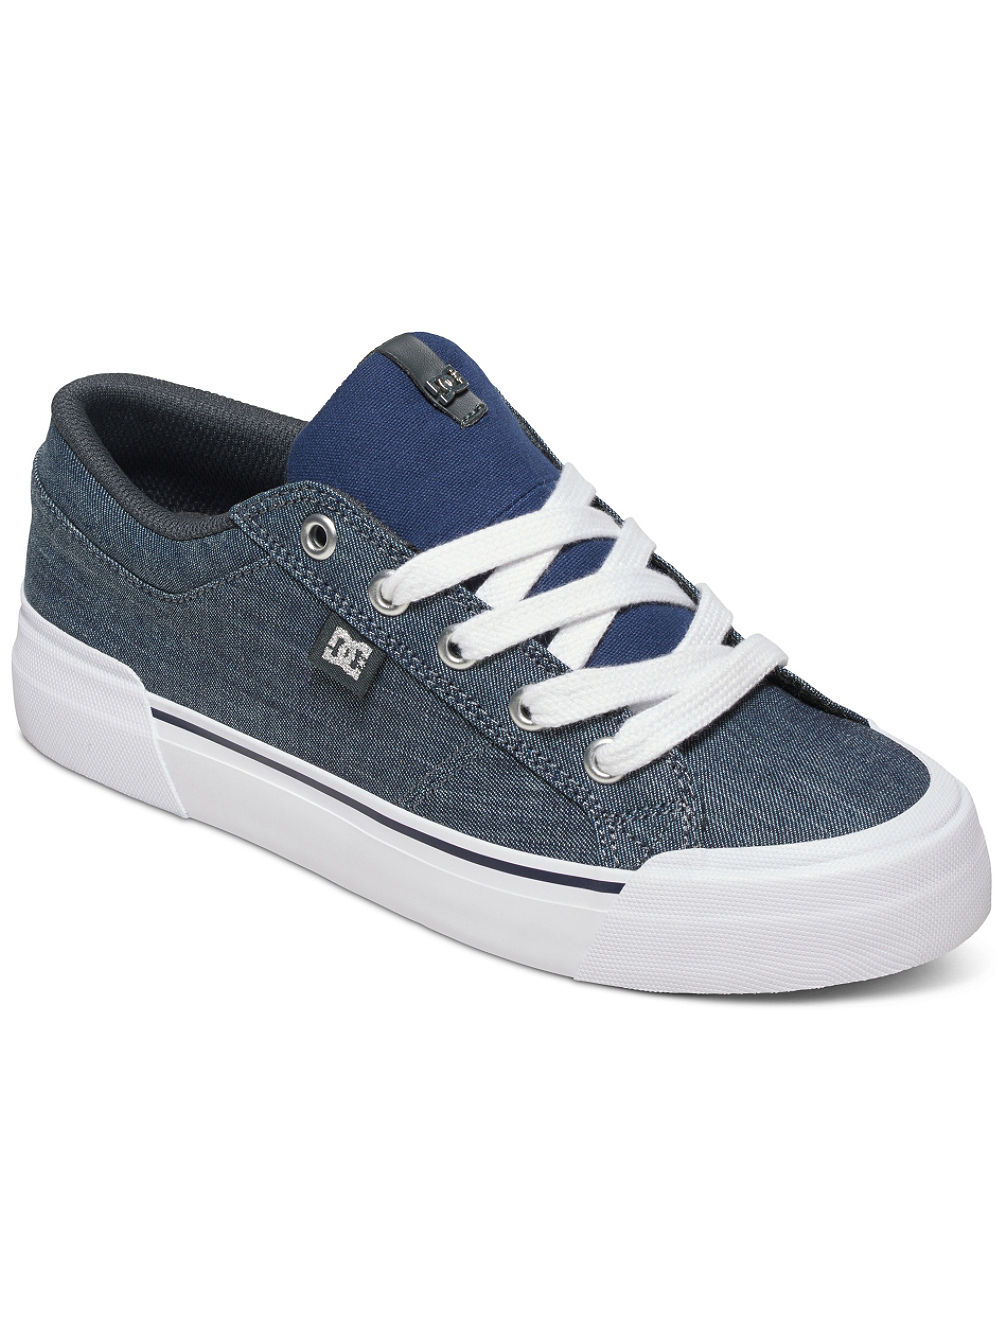 Danni Tx Se Sneakers Women